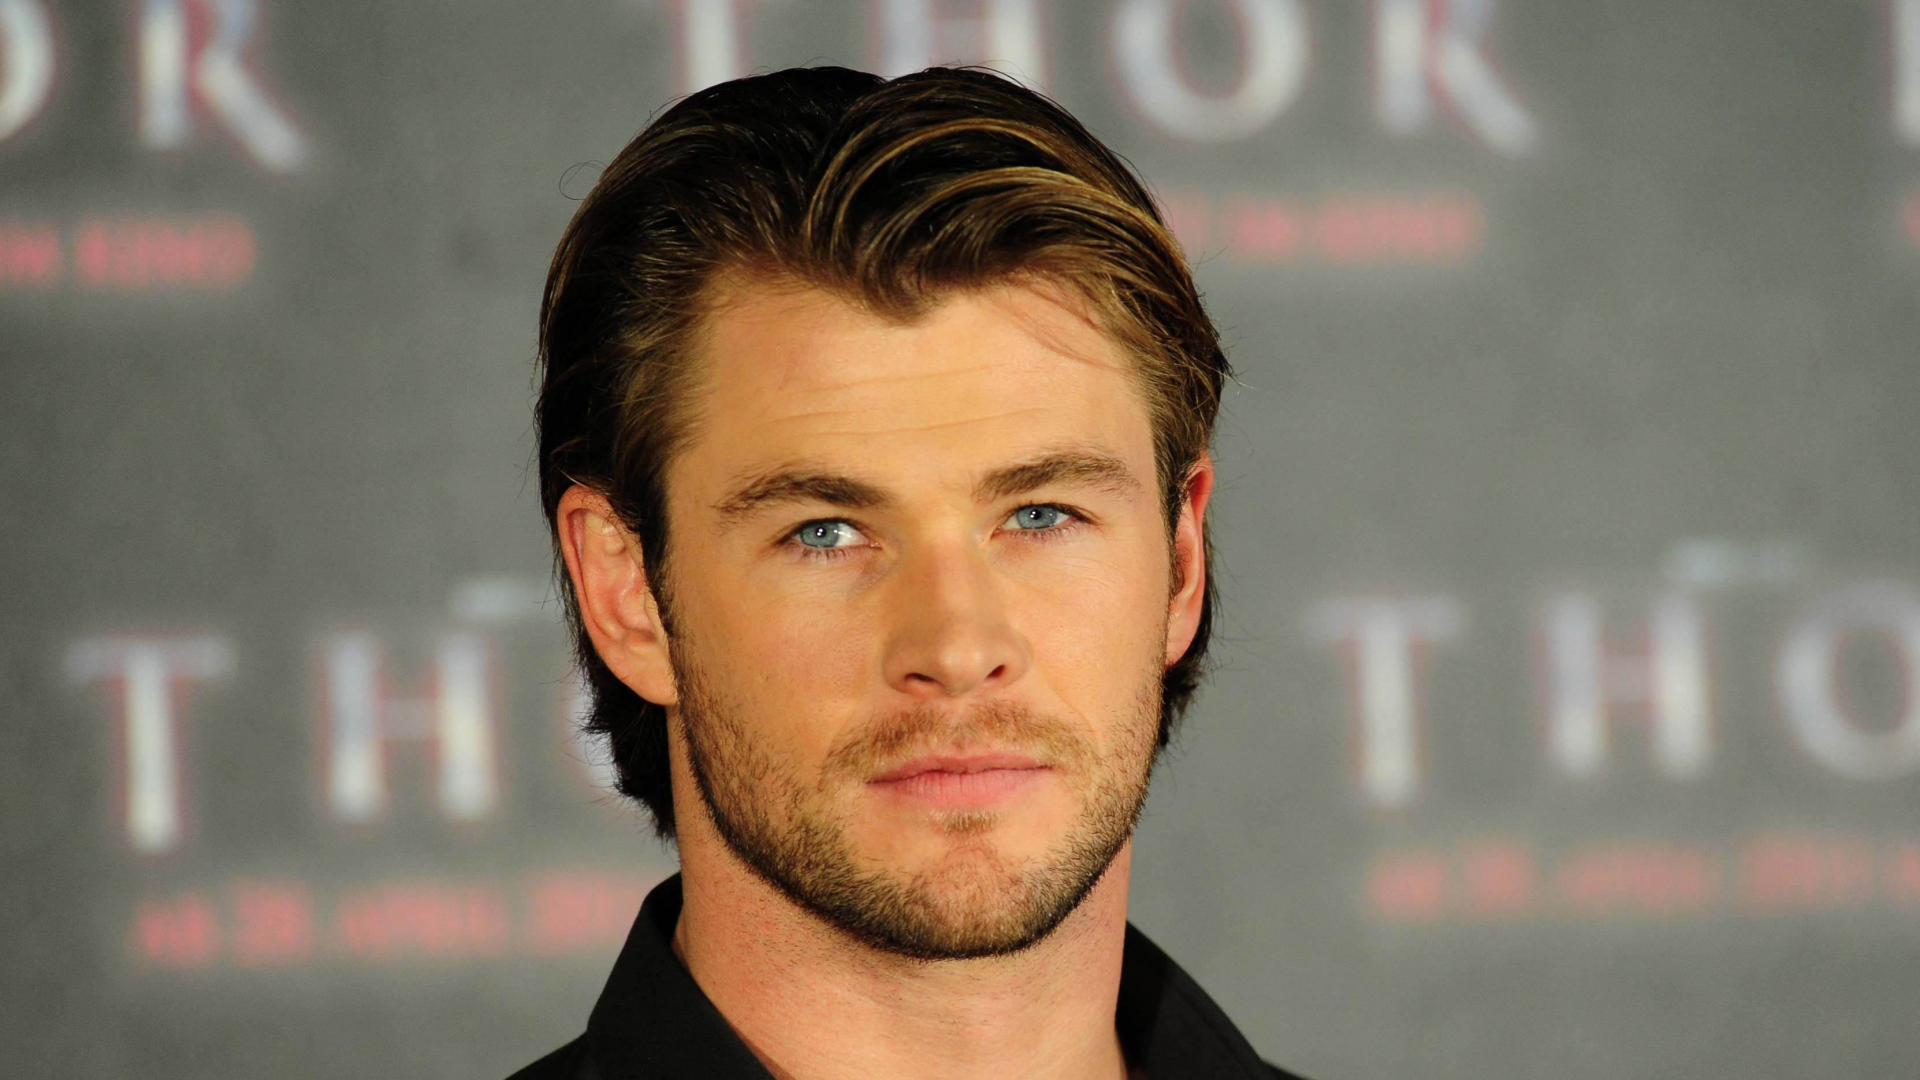 eyes,chris hemsworth,center,oculus,peeper,background,hairstyle,celebrities,middle,setting,backcloth,scope,chris,background signal,hemsworth,background knowledge,ground